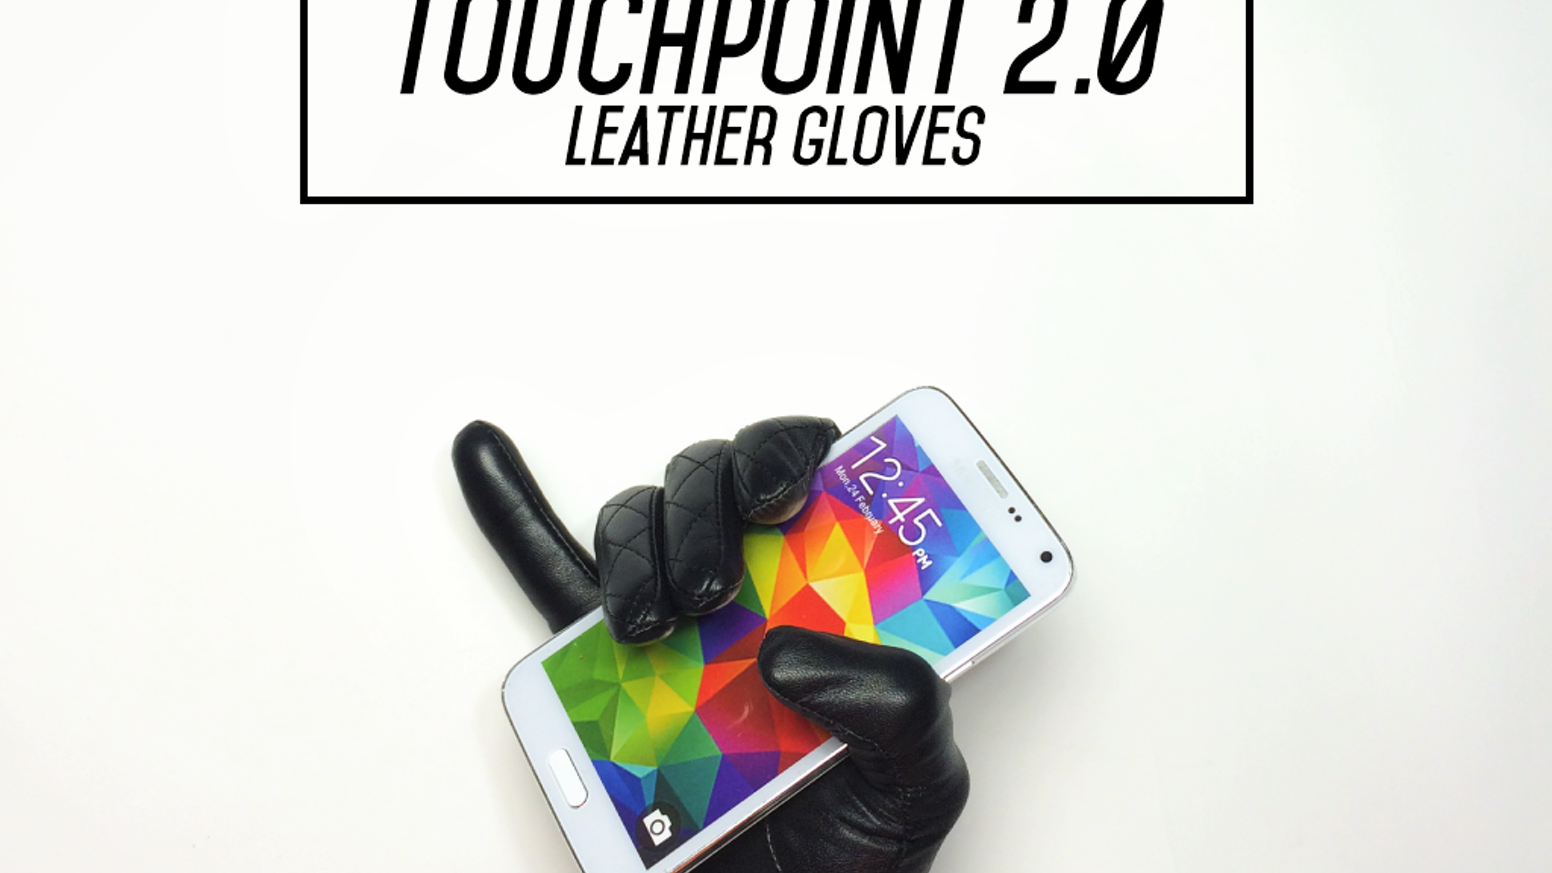 Leather gloves with classic style, touchscreen control, and NFC that can open any app with just a tap. Prepare for jealous stares.